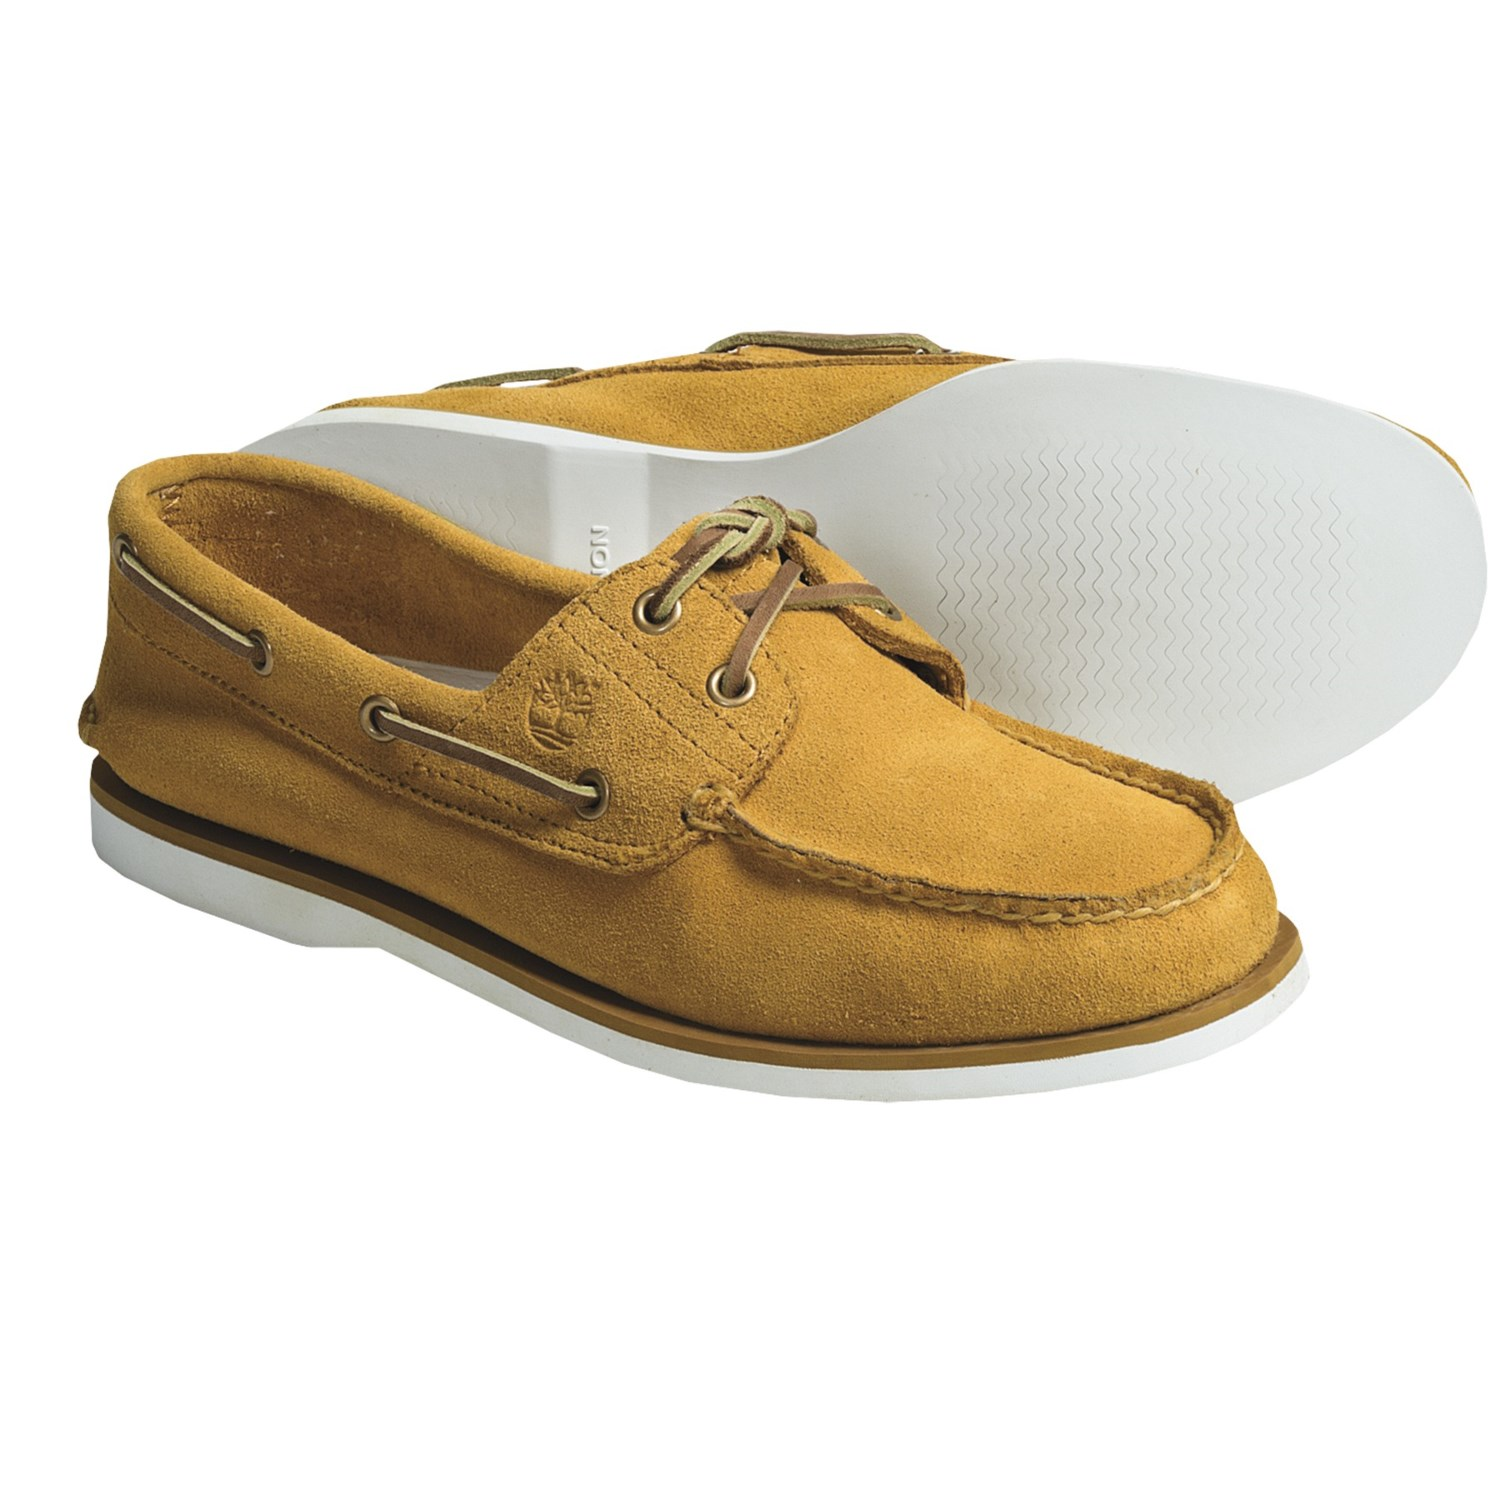 Lacing Timberland Boat Shoes